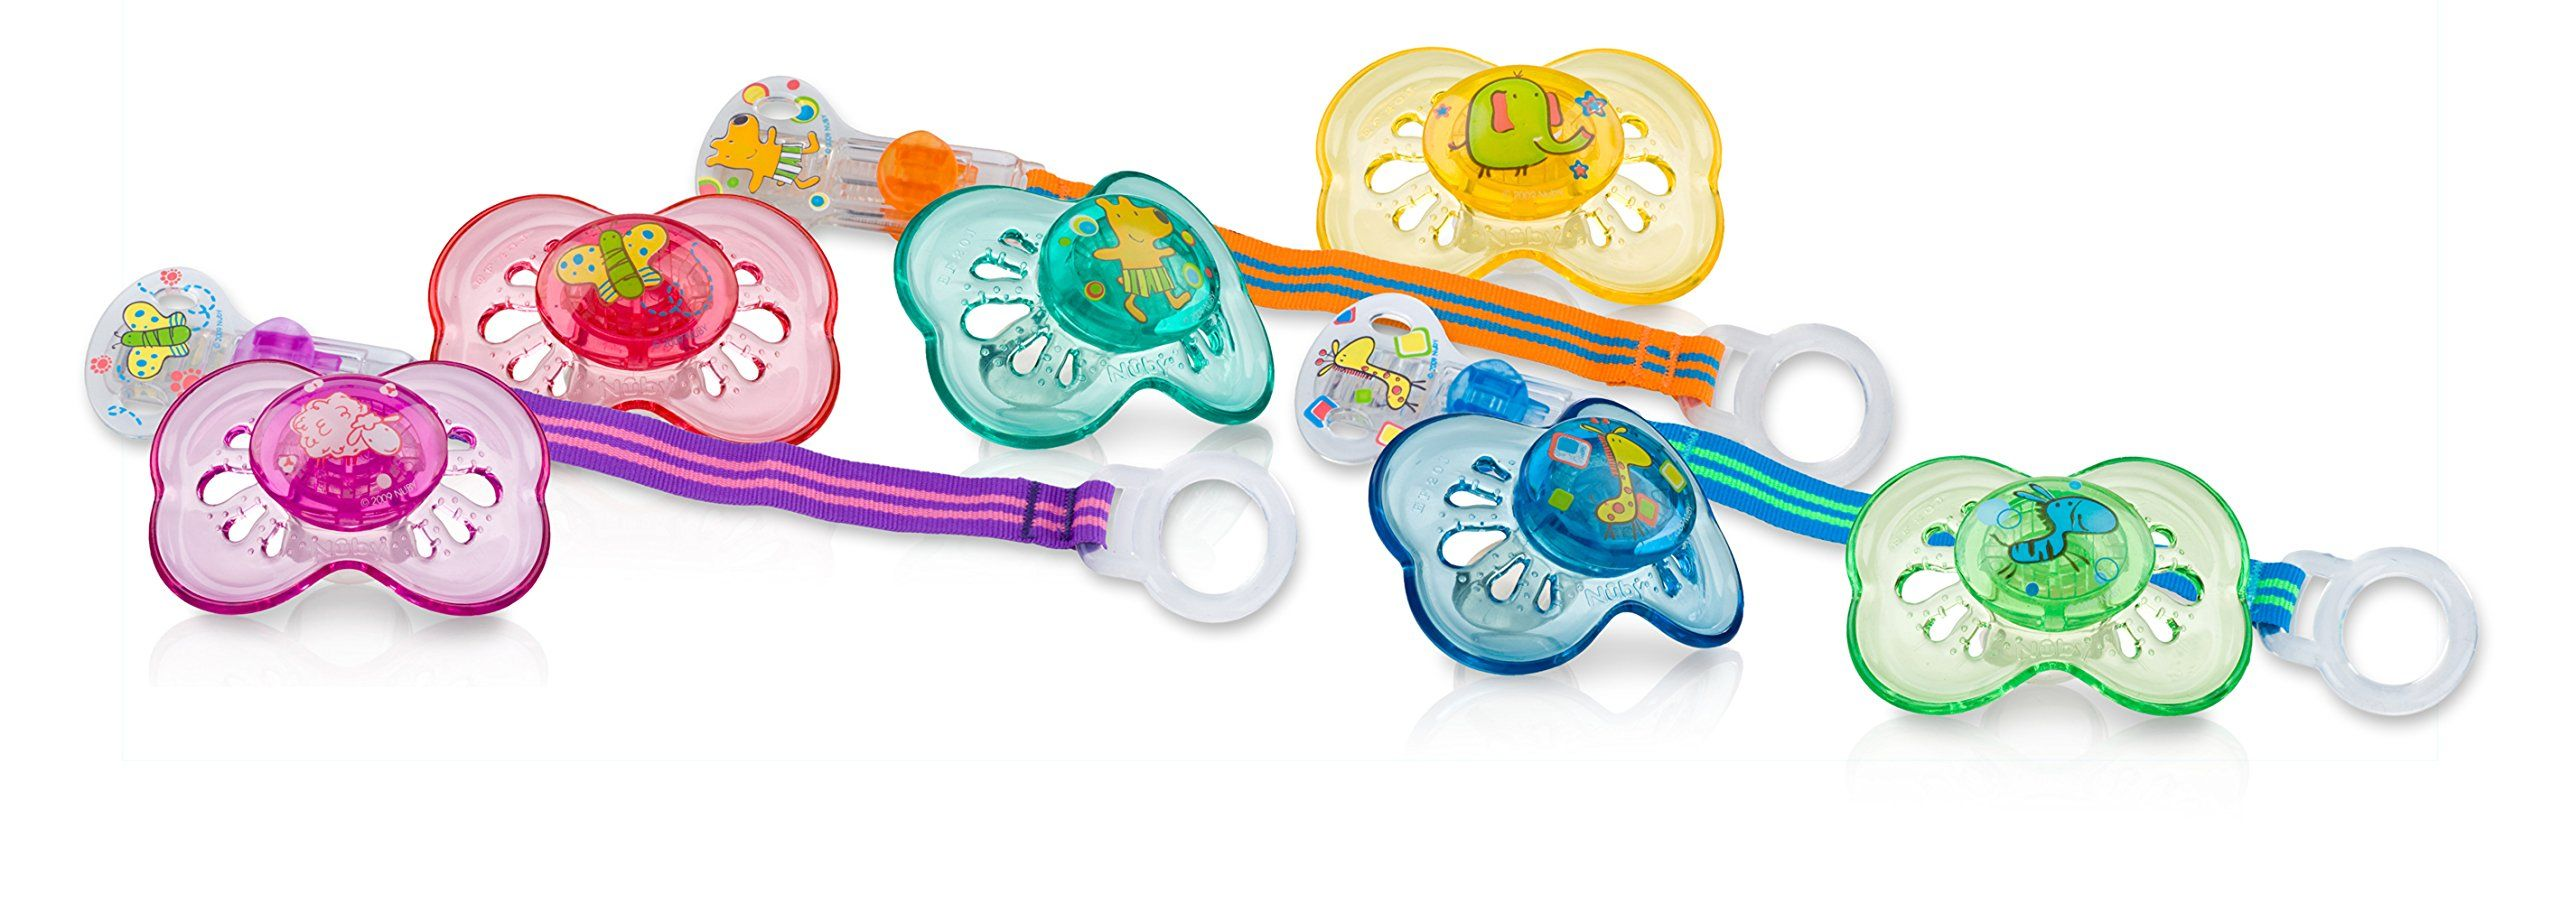 Nuby Pacifinder Combo Set